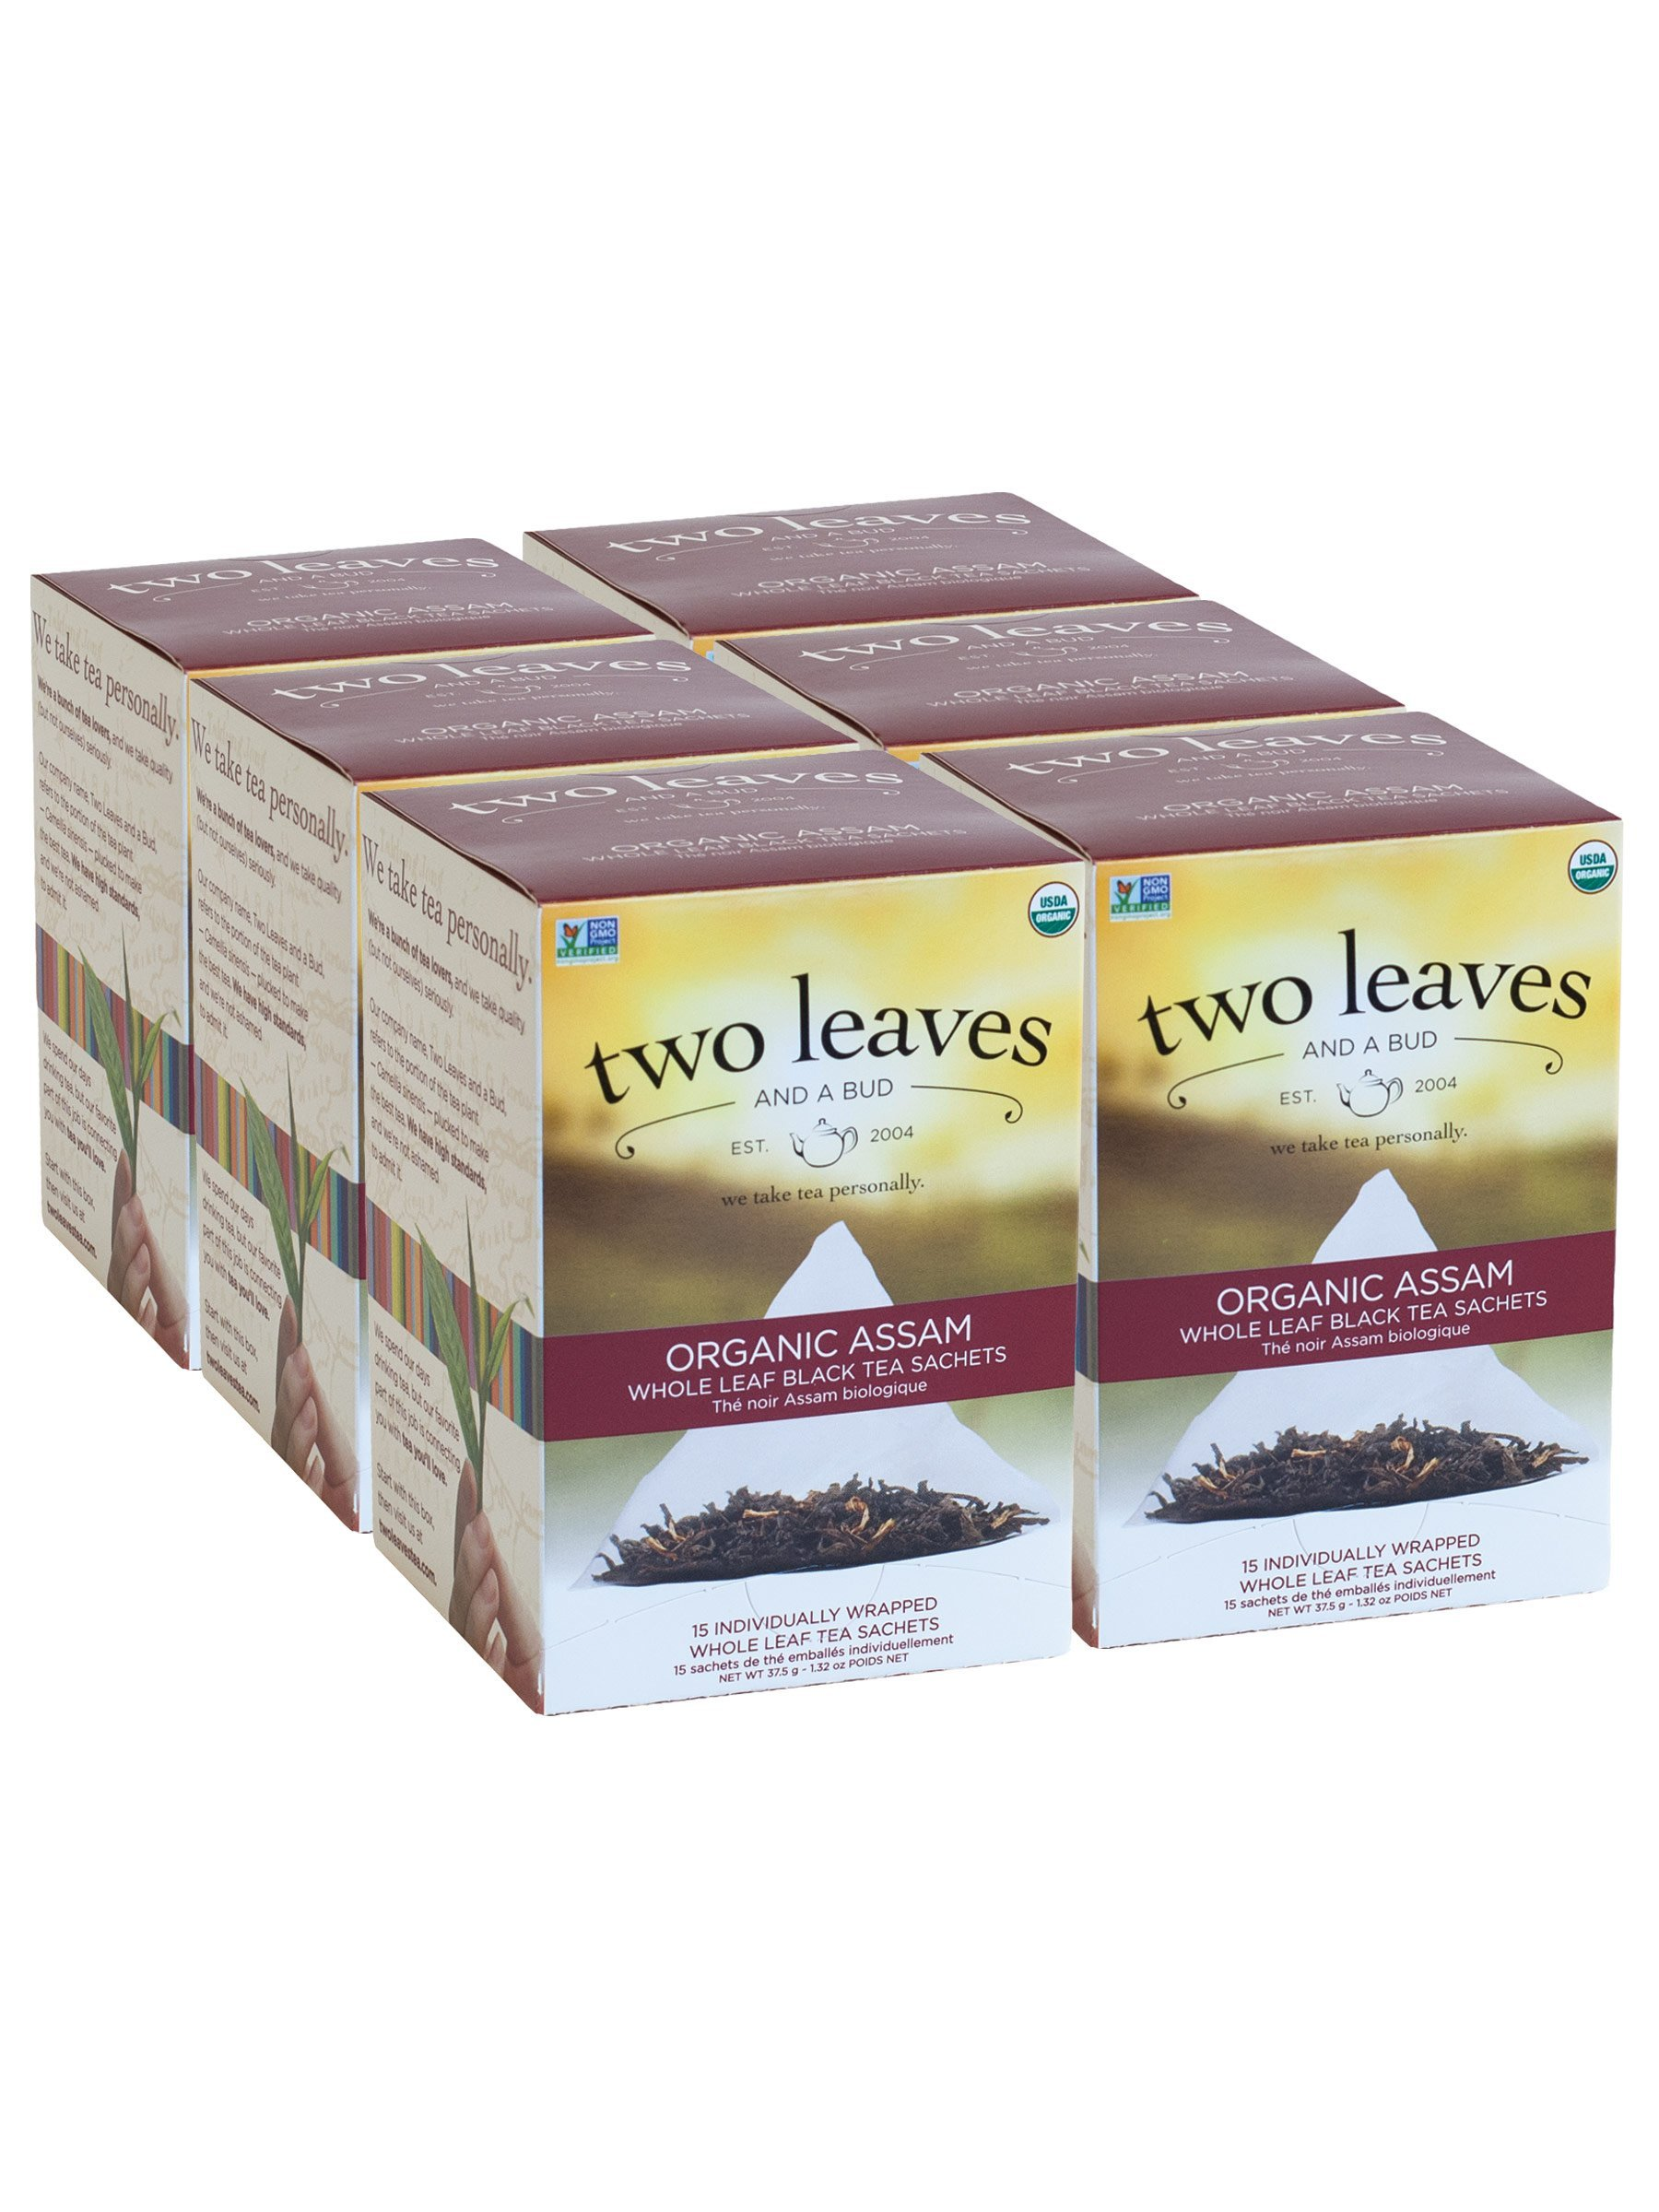 Two Leaves and a Bud Organic Assam Black Tea Bags, 15 Count (Pack of 6) Organic Whole Leaf Full Caffeine Black Tea in Pyramid Sachet Bags, Delicious Hot or Iced with Milk or Sugar or Honey or Plain